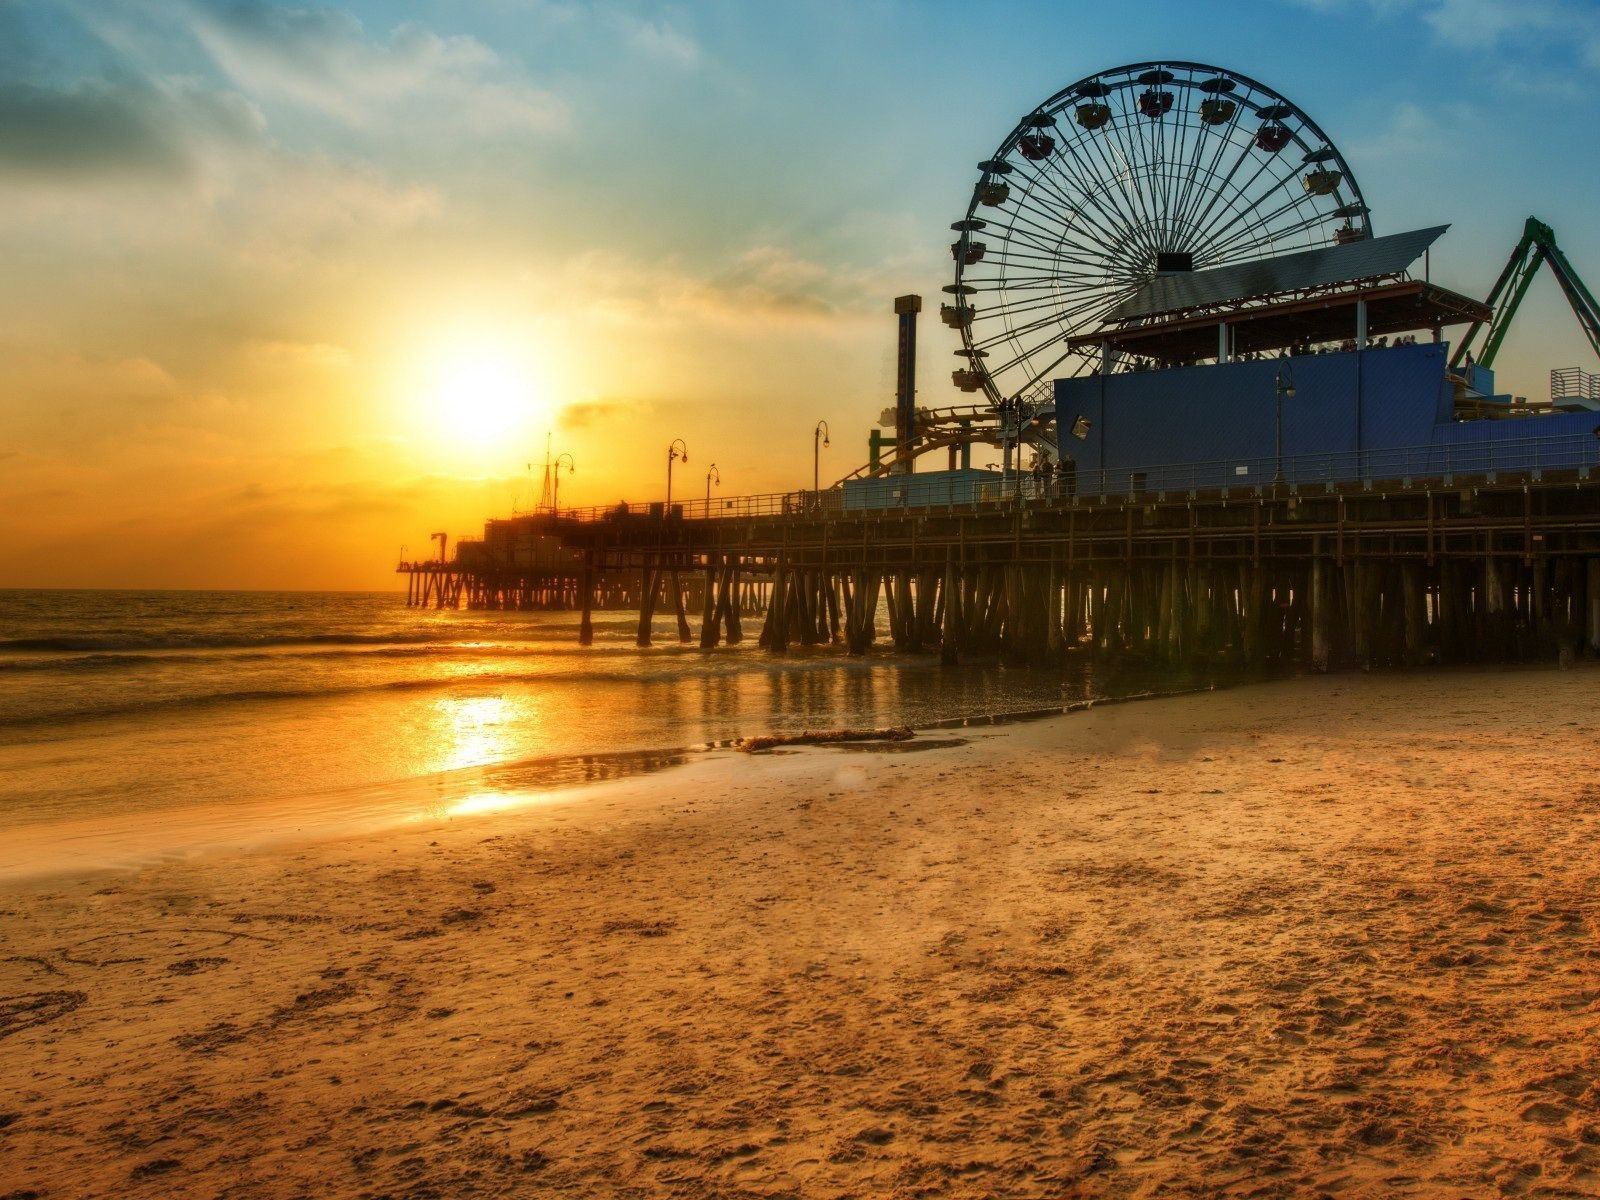 Los-Angeles-dock-Ferris-wheel-Beach-sunset_1600x1200